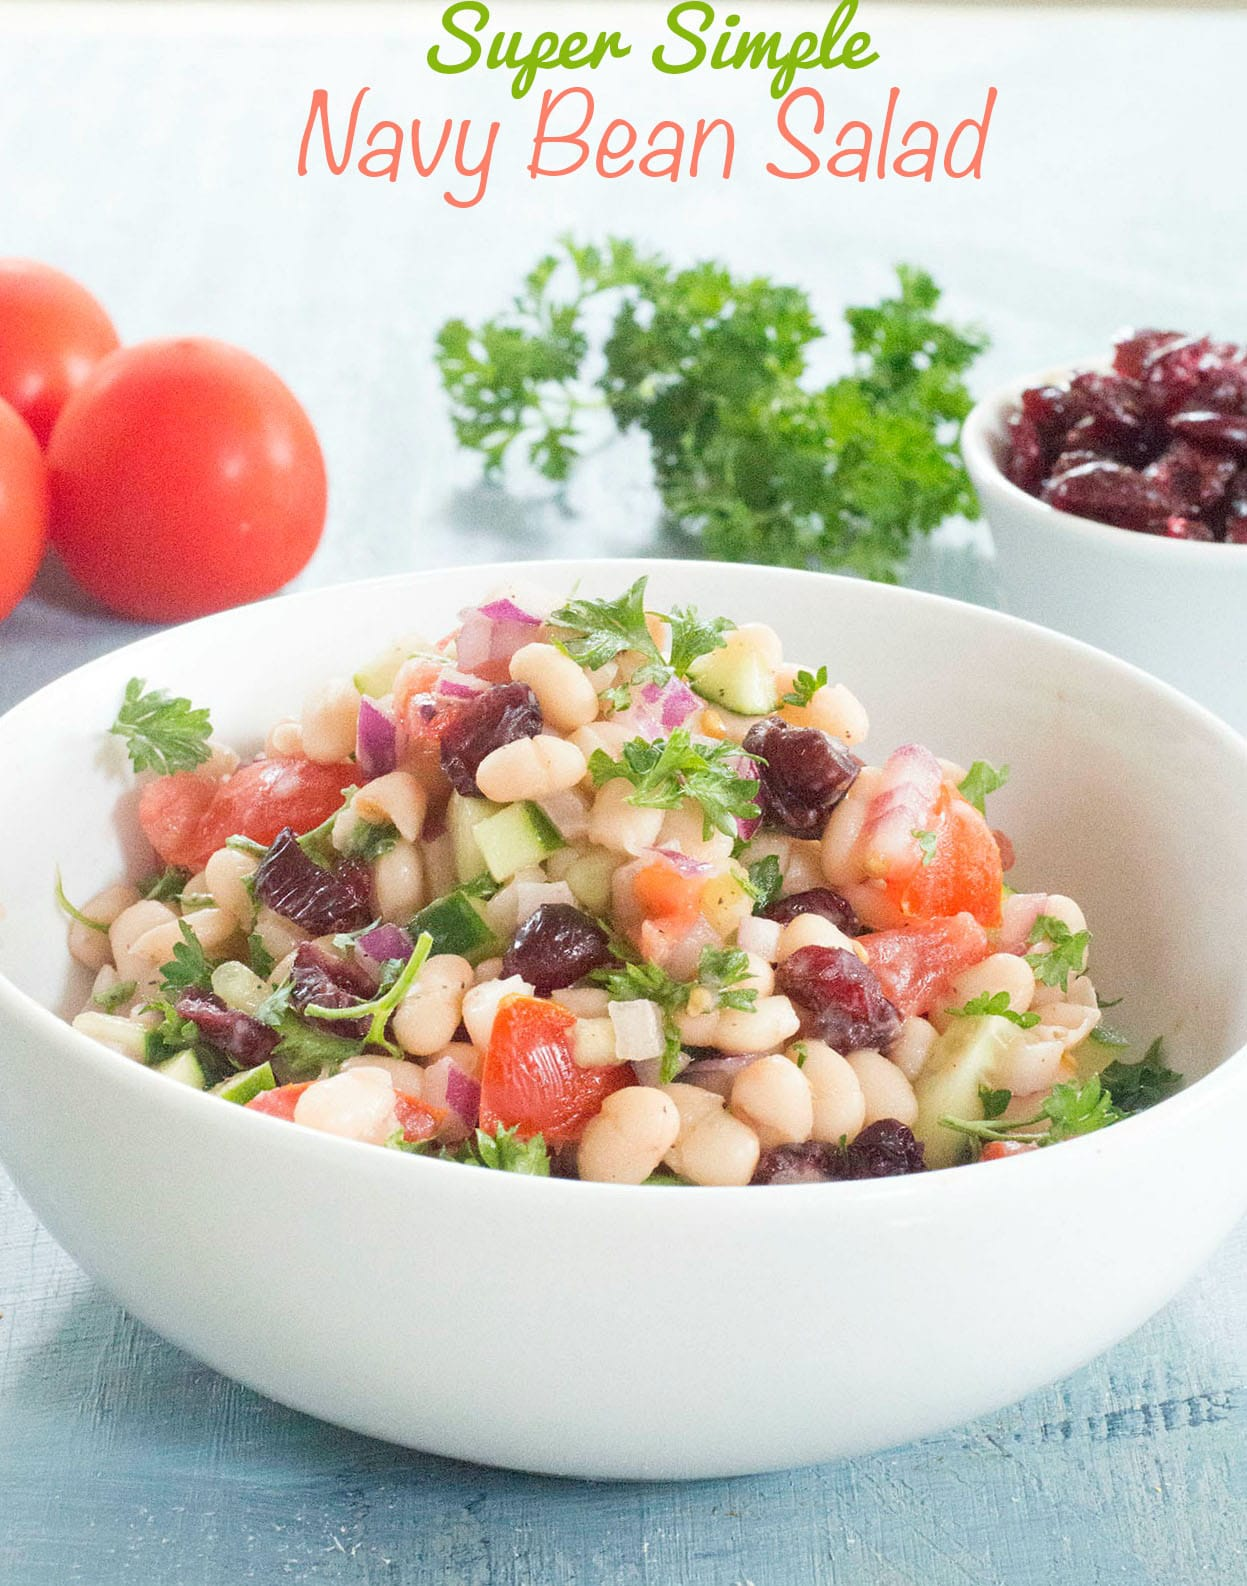 Front view of White Bowl Filled With Navy Beans, Chopped Tomatoes, Cranberries, Cucumber, Red Onions. Chopped Parsley as Garnish. In the Background, There is a Partially Visible White Ramekin with Cranberries. On the Left Background, Two and Half Campari Tomatoes are Visible. A Sprig of Curley Parsley is in Between the Tomatoes and Dried Cranberries. Navy Beans Salad Is in Orange Letters and Super Simple is Written on Green Letters. The Lettering Appears On Top of the Image